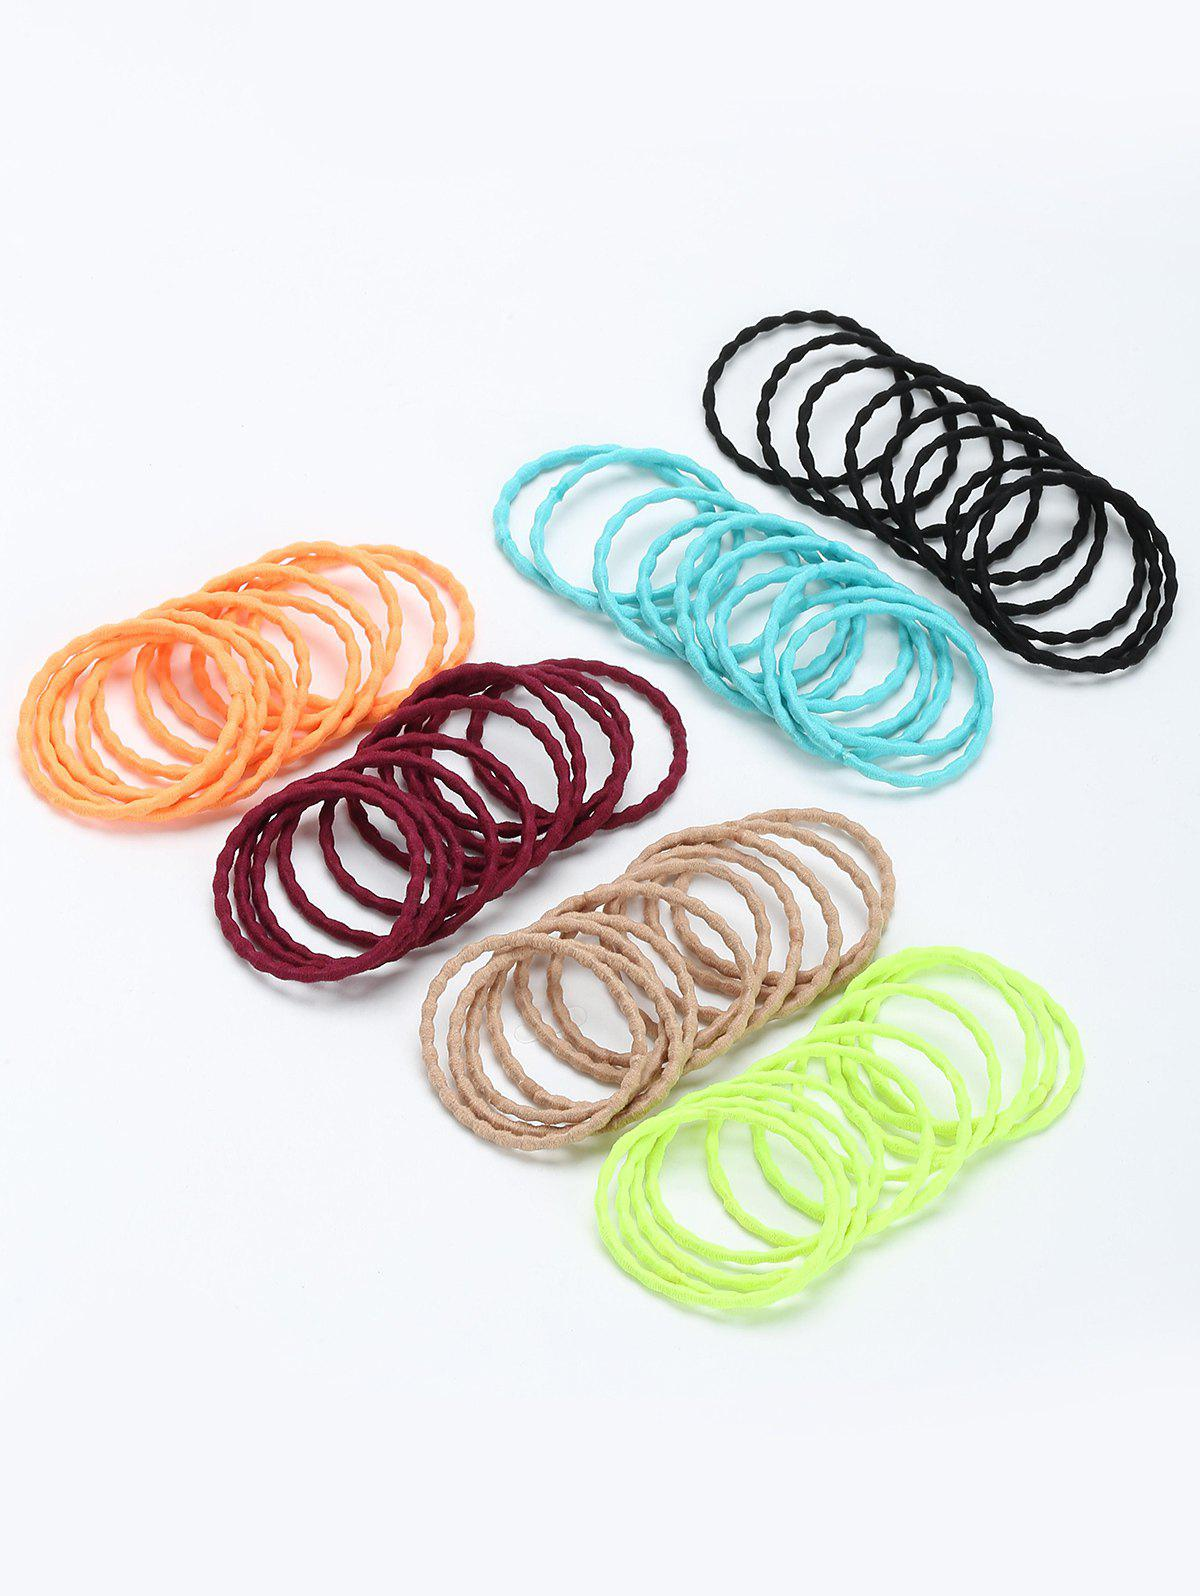 Buy Curved Stretchy Hair Band Group Set